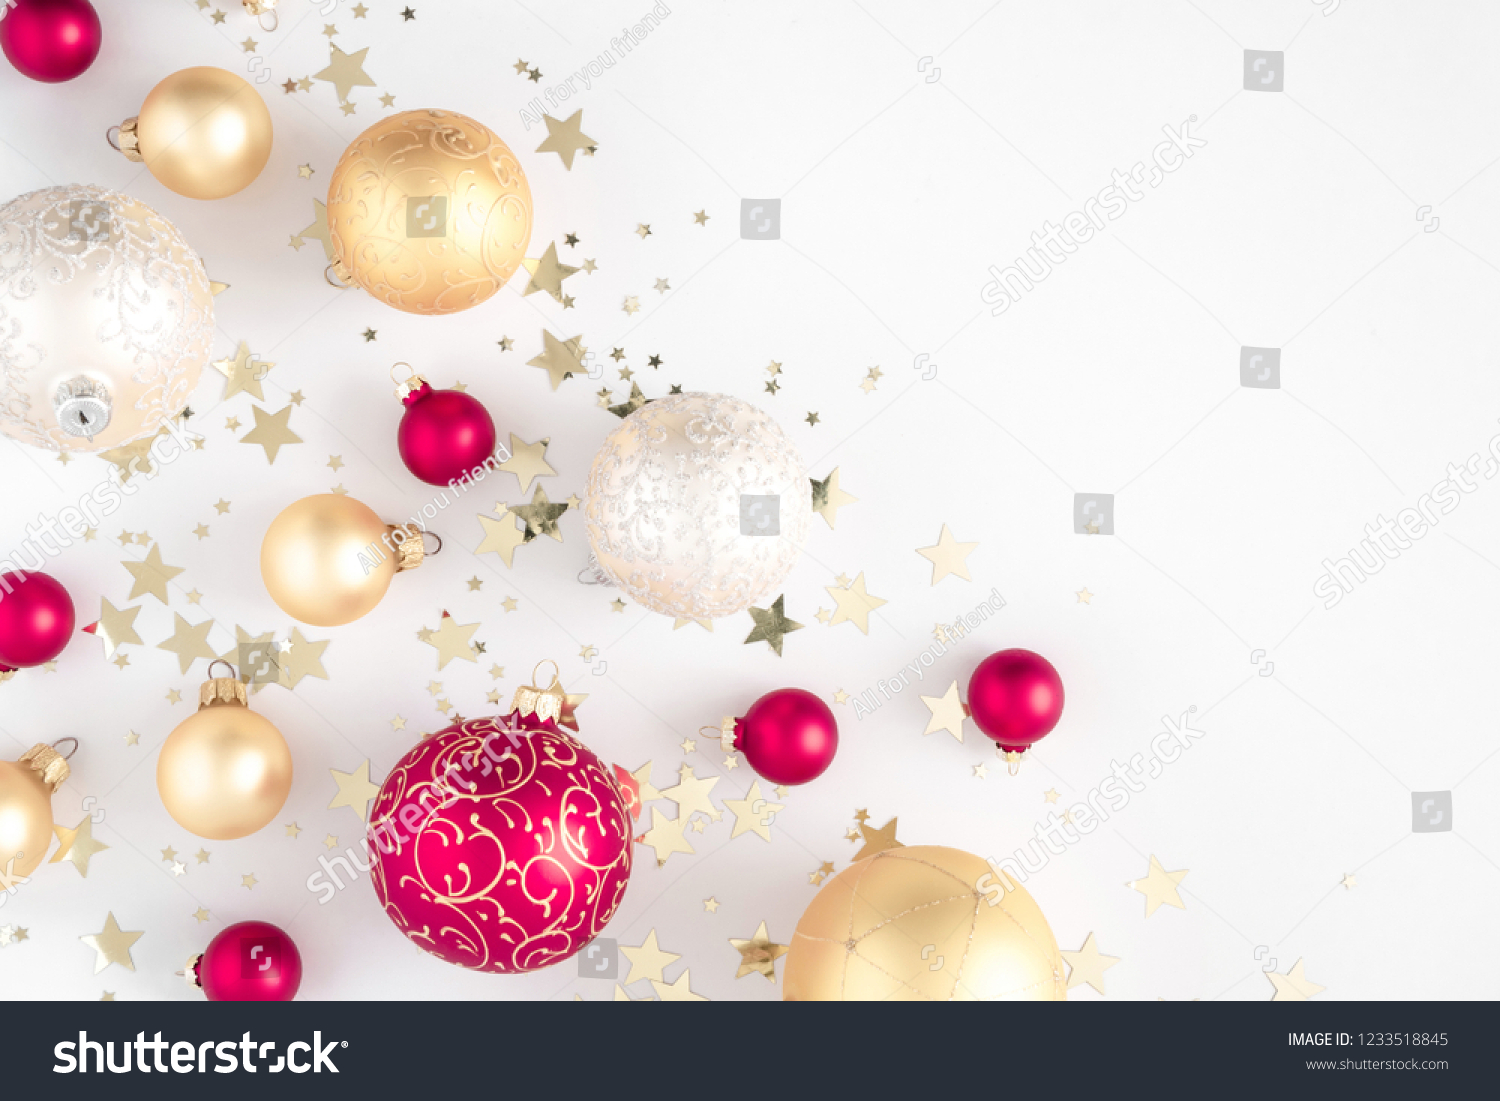 Christmas elegant composition. Christmas red and gold decorations on white background. Christmas, New Year, winter concept. Flat lay, top view, copy space #1233518845